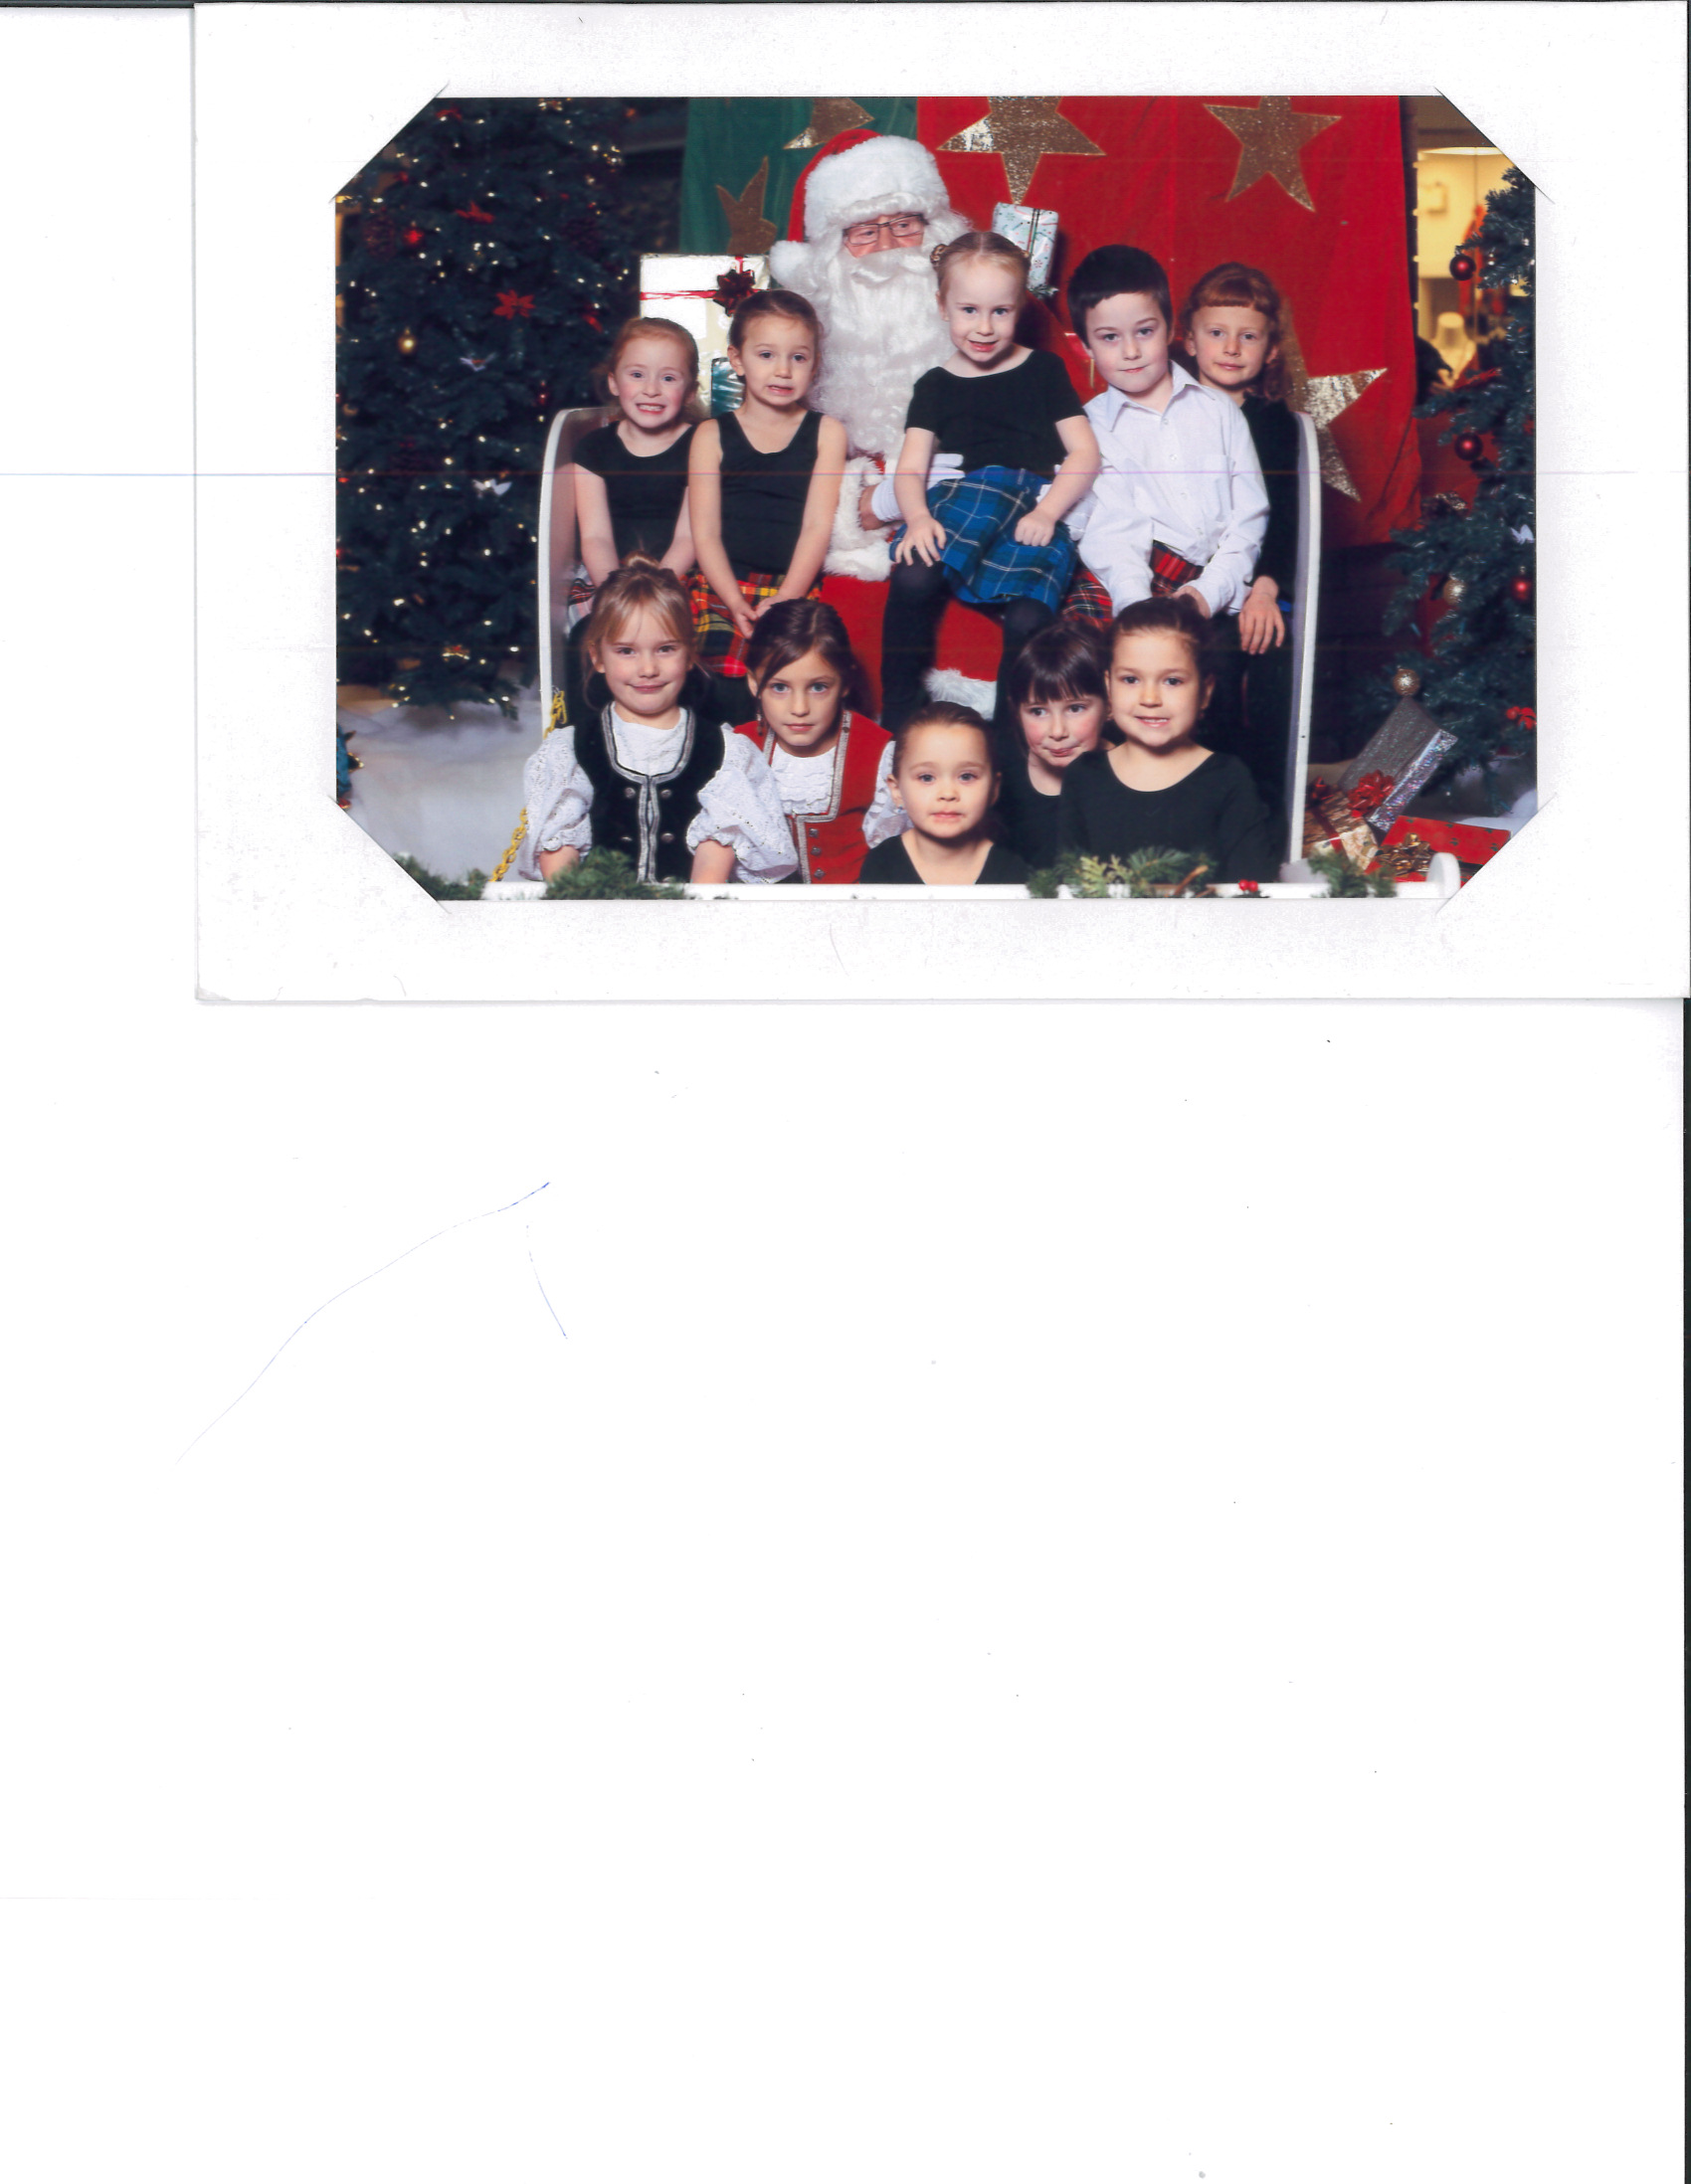 Primary Dancers with Santa 2012